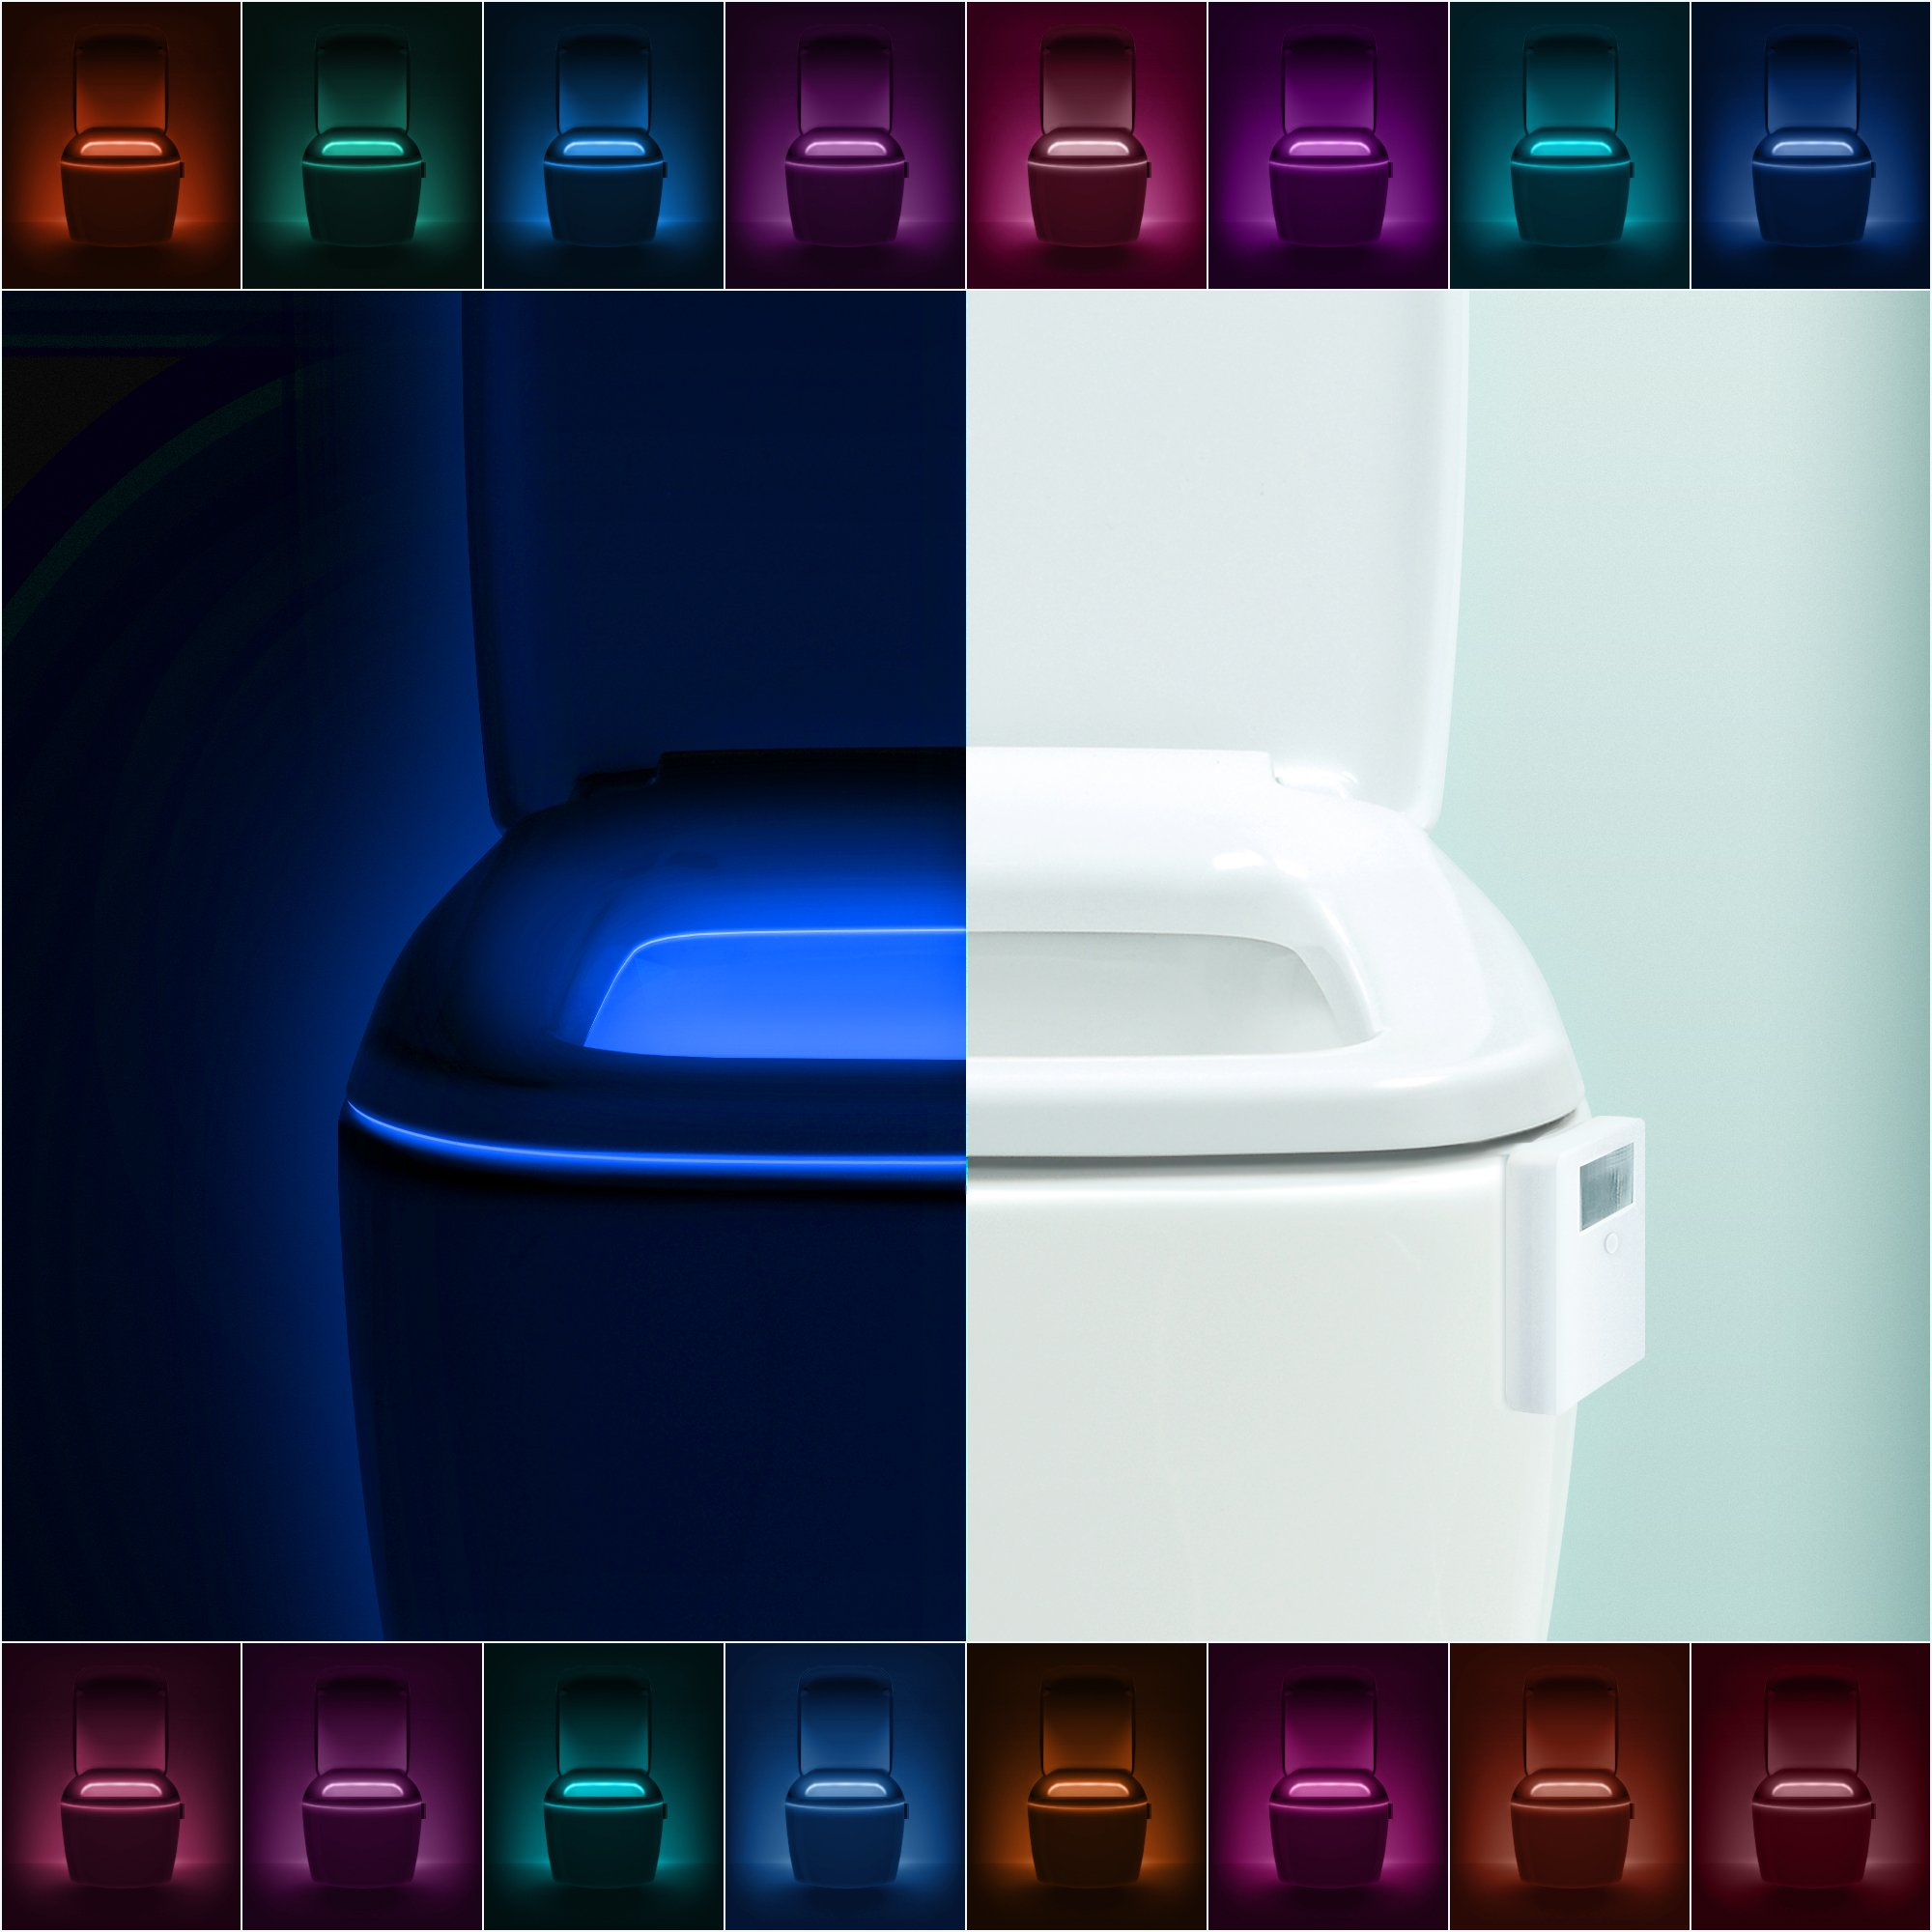 LumiLux Advanced 16-Color Motion Sensor LED Toilet Bowl Night Light, Internal Memory, Light Detection by LumiLux